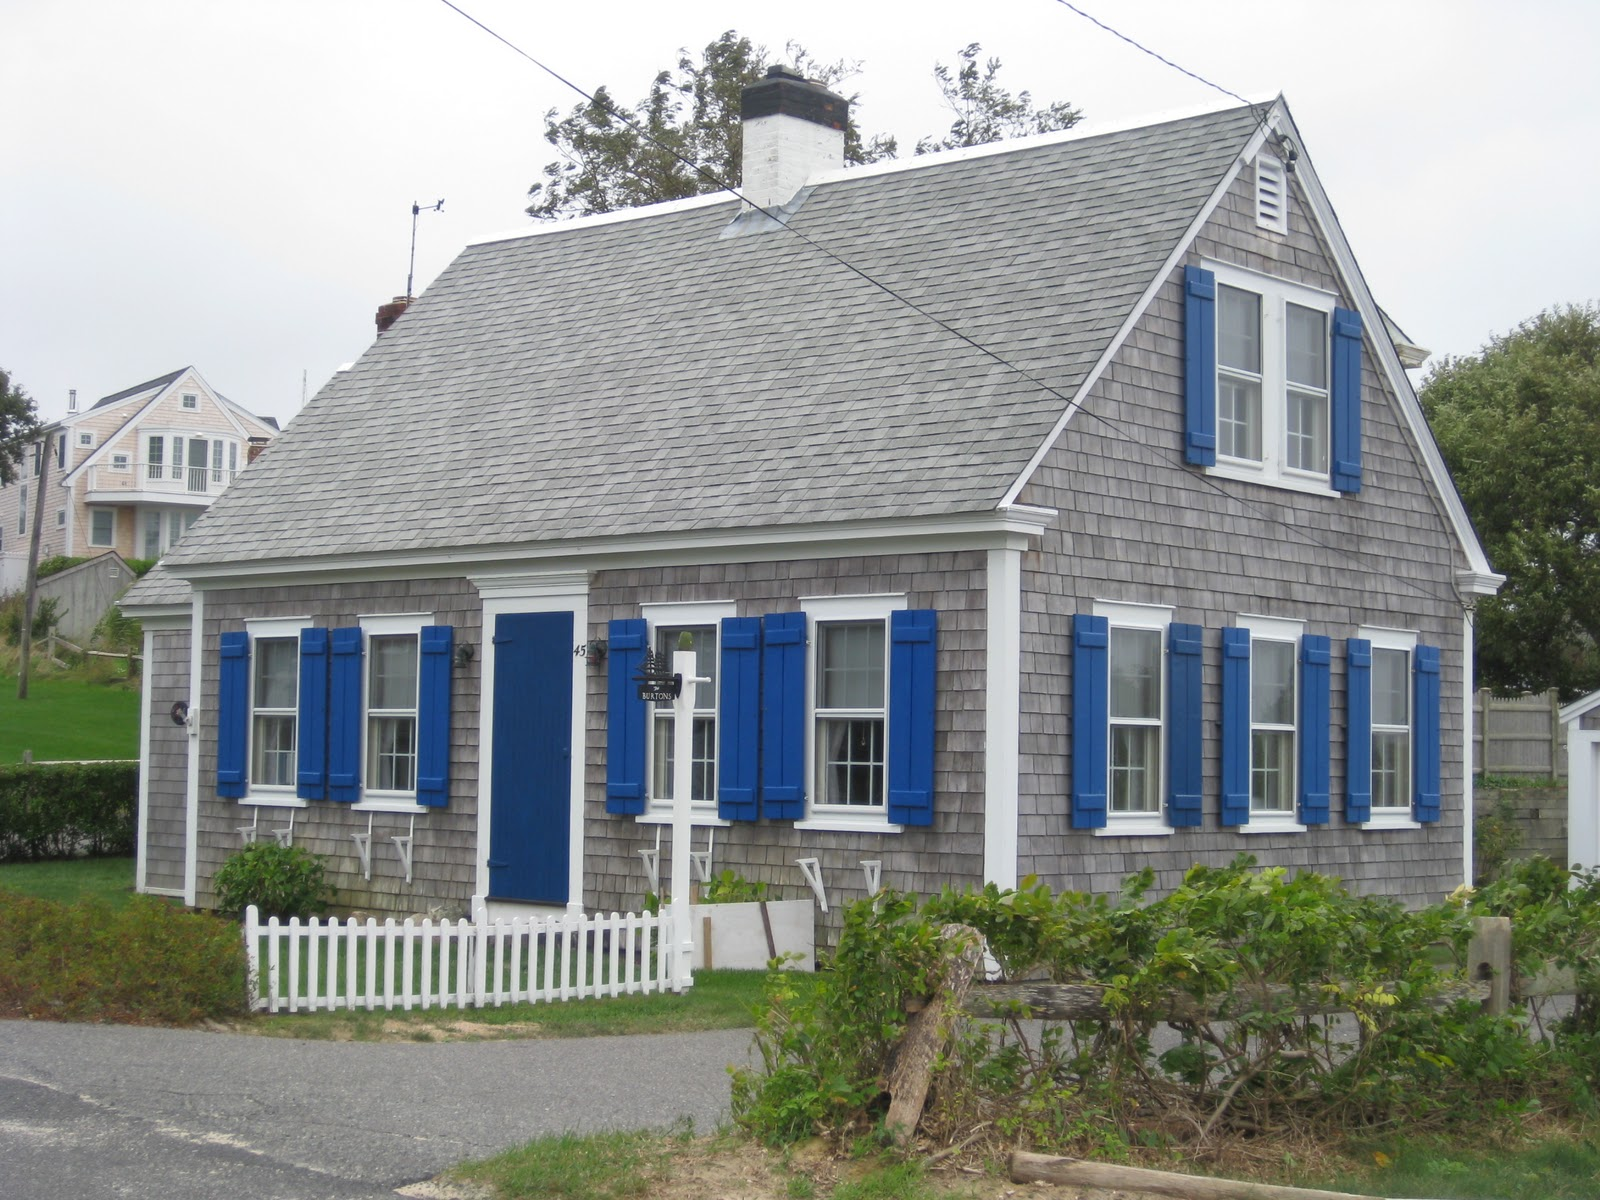 Scenes from cape cod pt iv landmarks A cape house